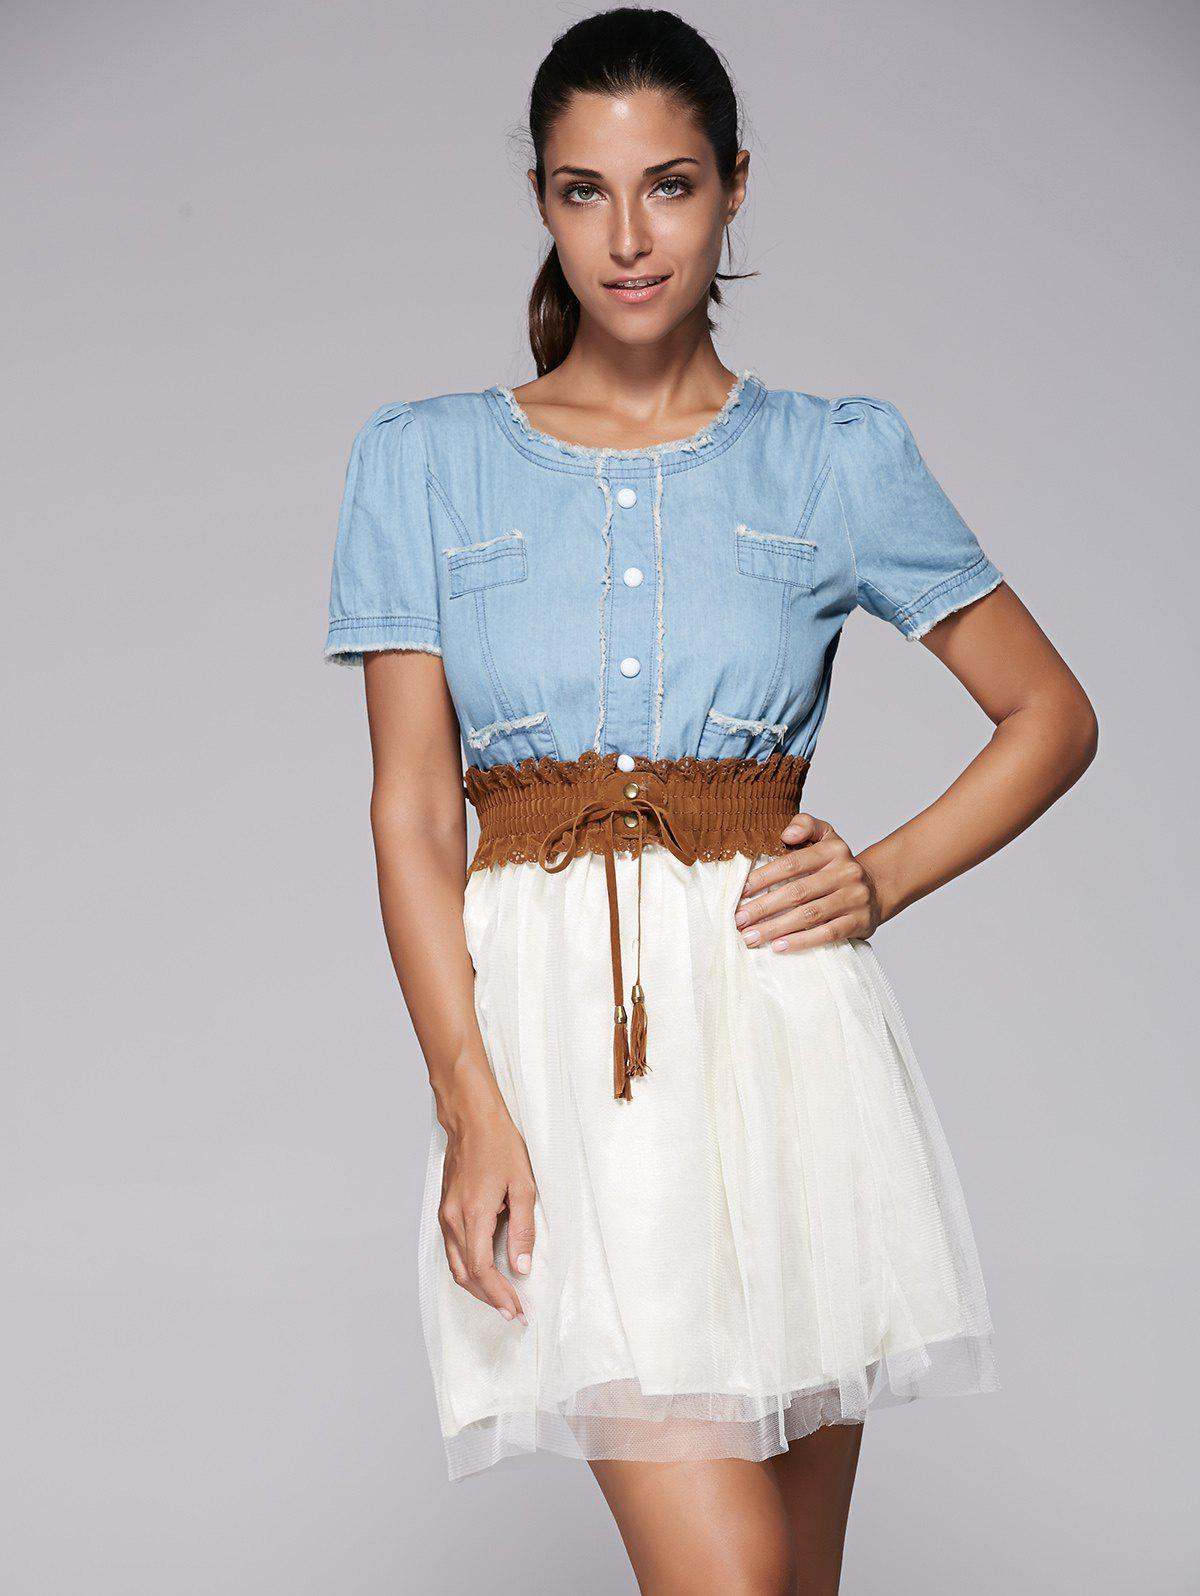 Elegant Denim Splicing Chiffon Dress With Belt For Women - BLUE S